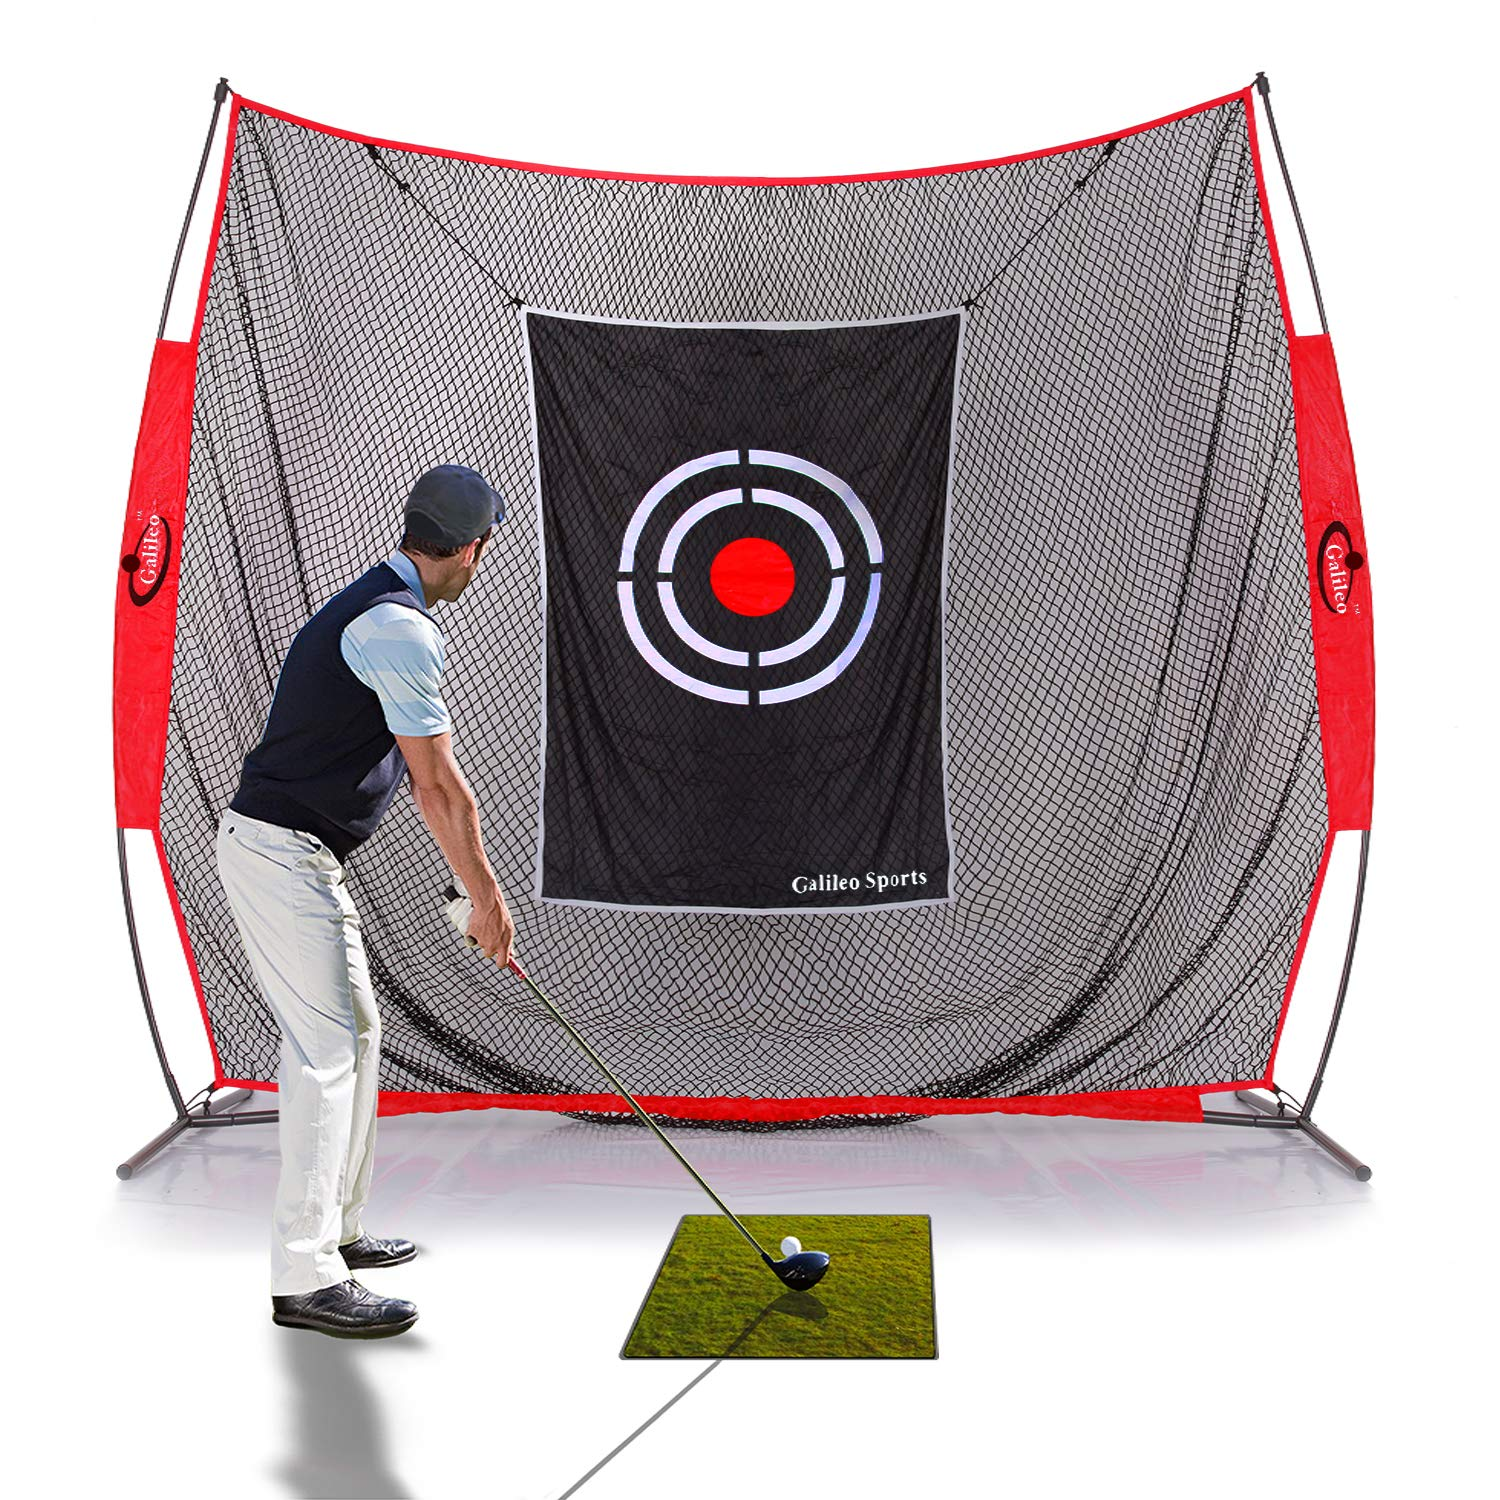 GALILEO Golf Practice Net 7x8Feet Golf Hitting Nets Driving Range Indoor Outdoor Golf Training Aids with Target Carry Bag by GALILEO